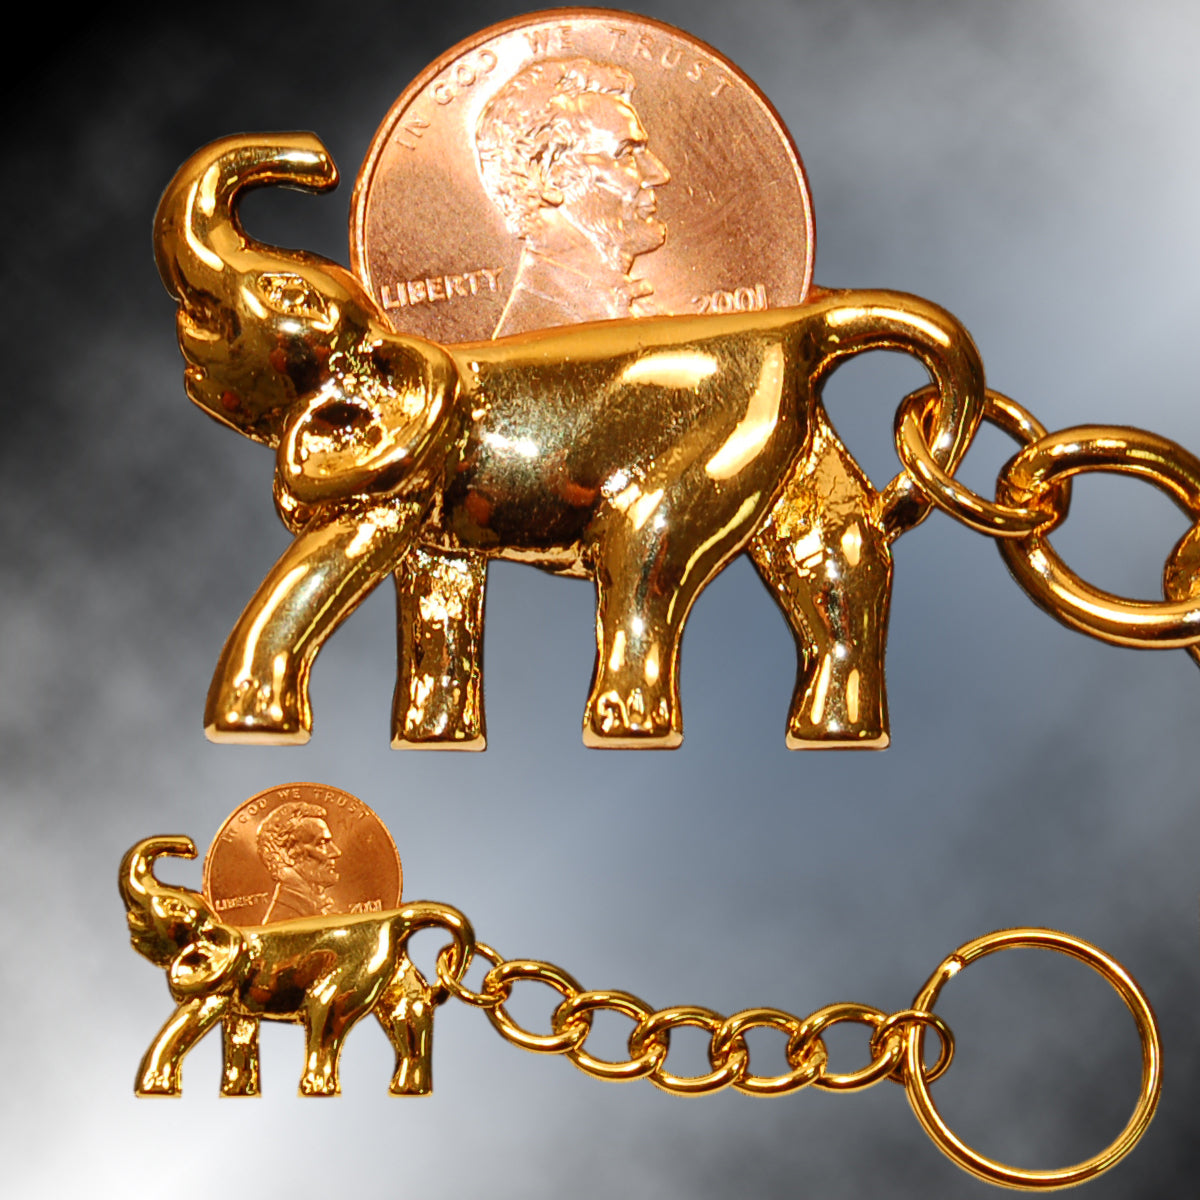 Lucky Elephant Lottery Scratcher Key Chain!